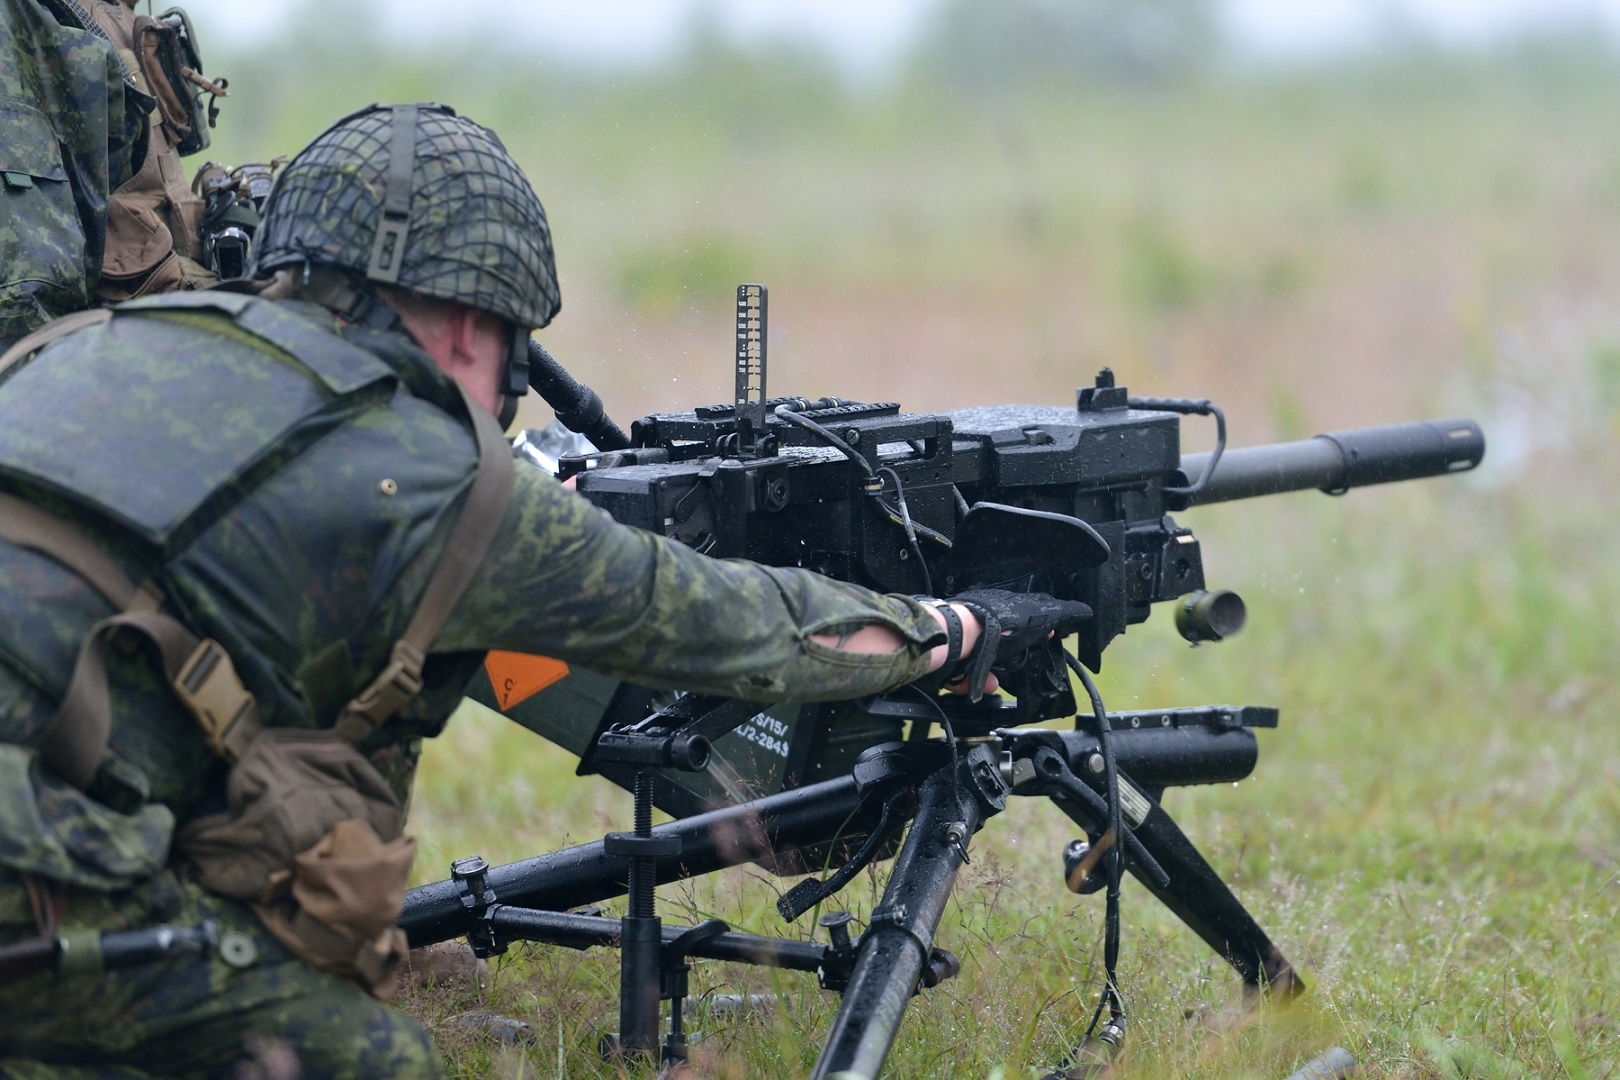 "Members of Princess Patricia's Canadian Light Infantry First Battalion Bravo Company, deployed on Operation REASSURANCE as part of the enhanced Forward Battlegroup Latvia, fire a C16 in the training ranges of Camp Ādaži, Latvia on June 30, 2017. This exercise is to ""zero"" the weapon, a process to adjust the sights ensuring maximum accuracy."